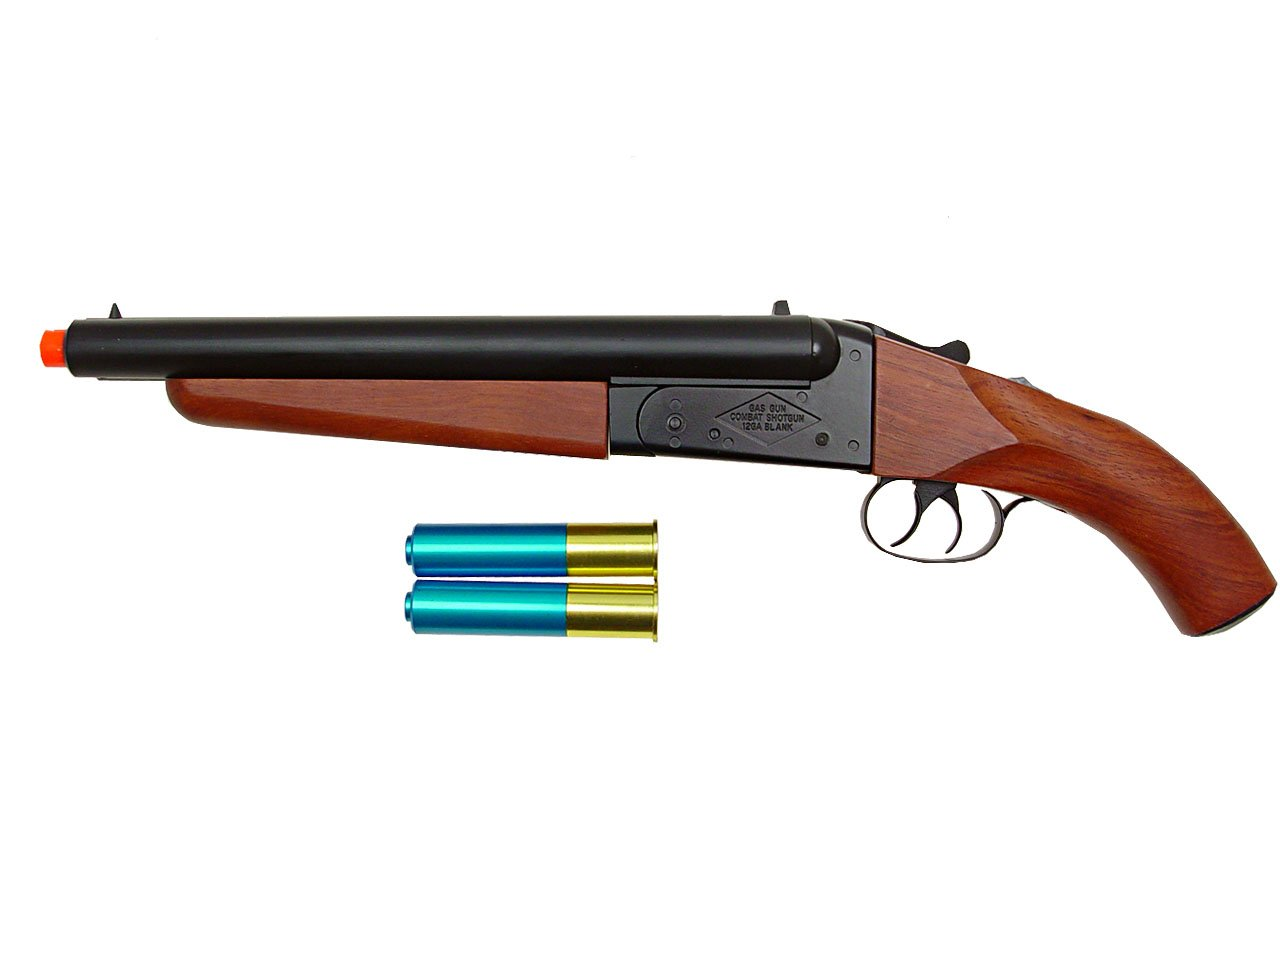 Bien connu Amazon.com : hs model-6801 gas shotgun/wood(s) double barrel  AS62